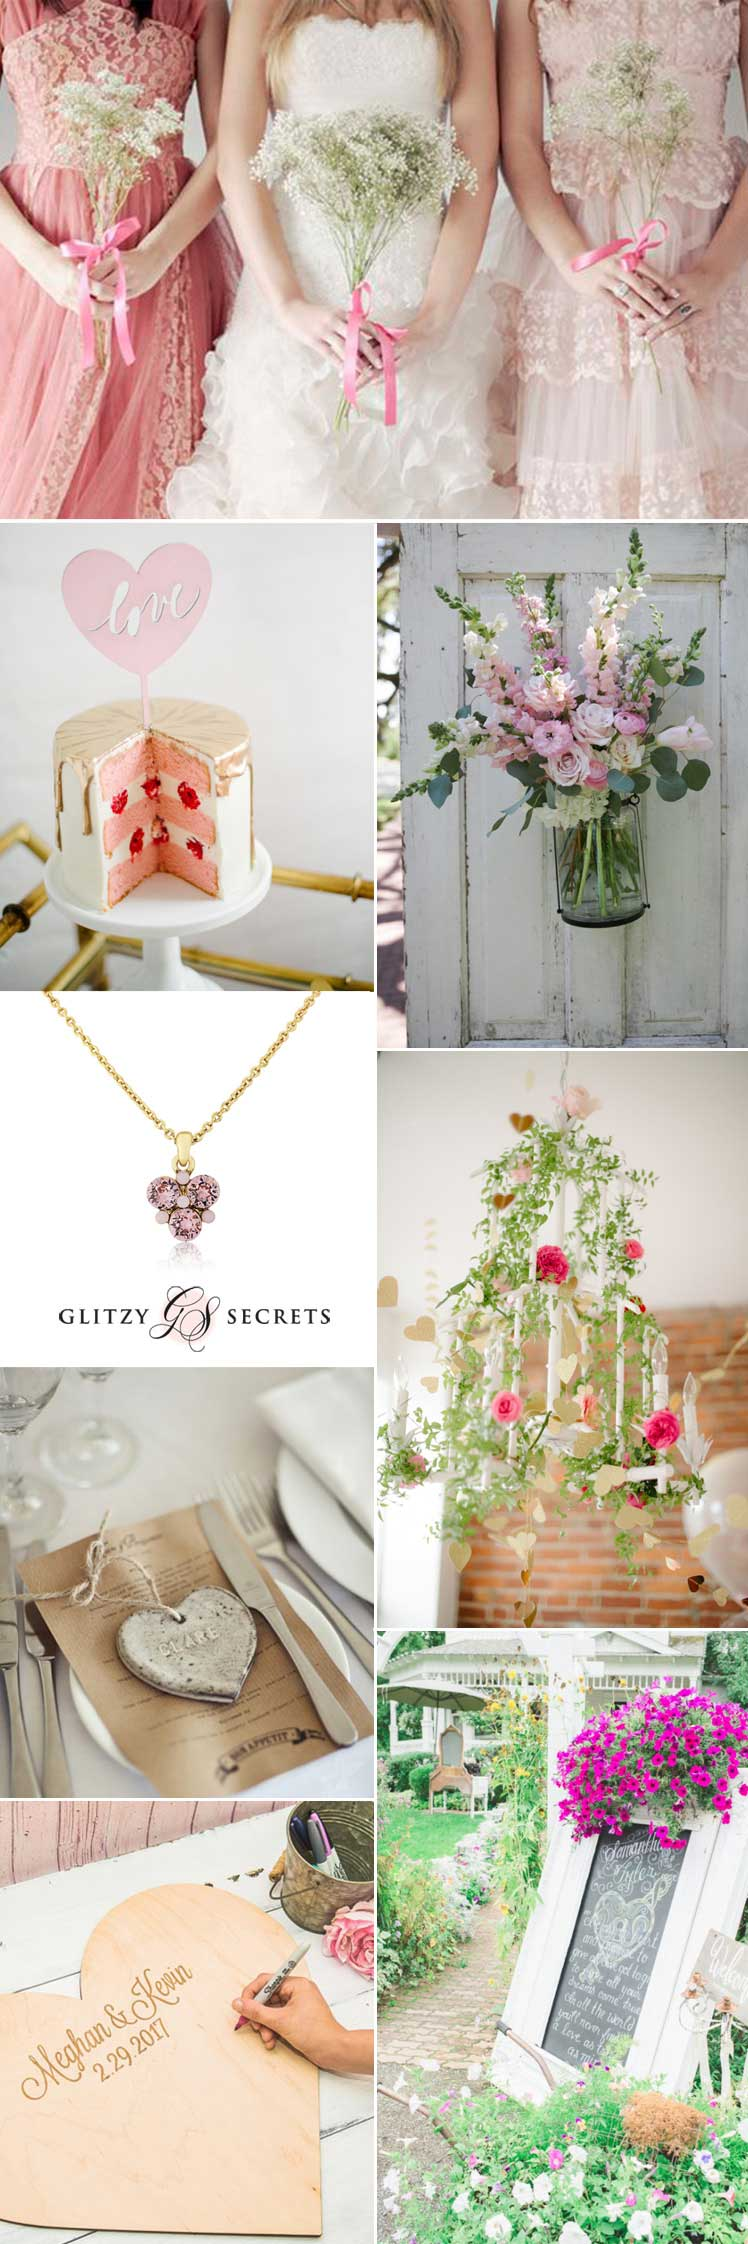 Ideas for a Valentine wedding day with a shabby chic style